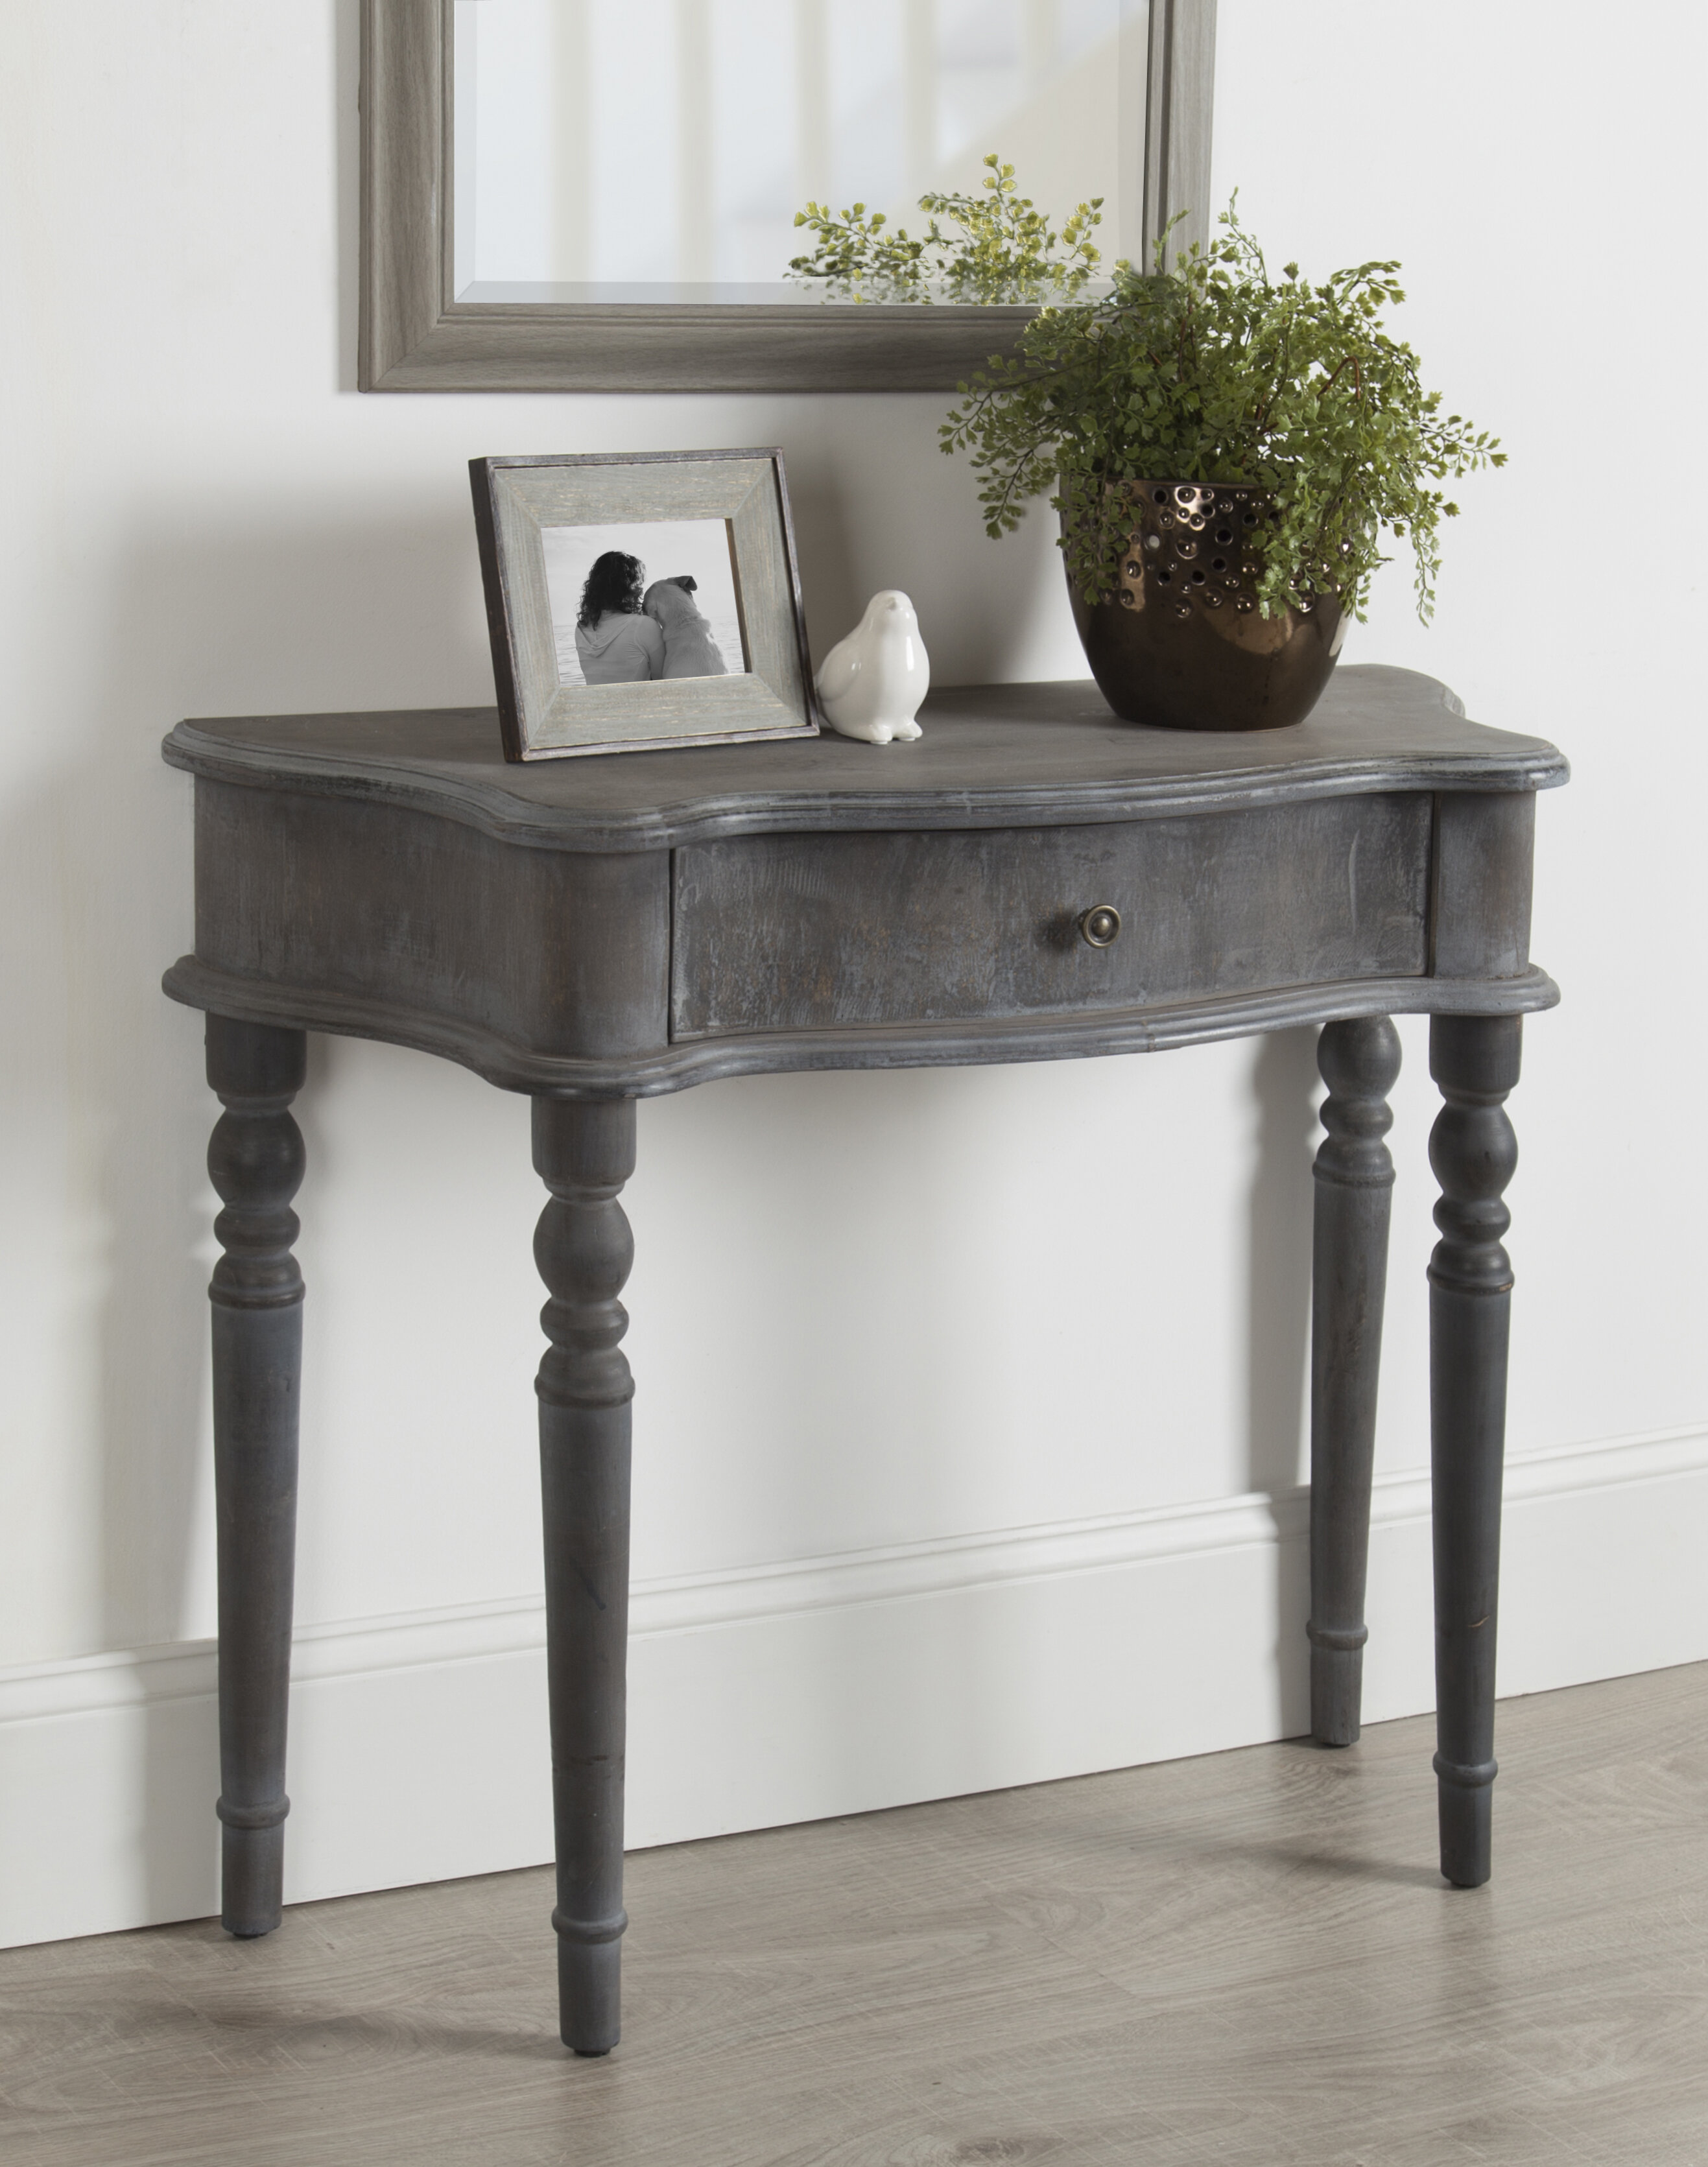 Wadley Country French Wood Console Table